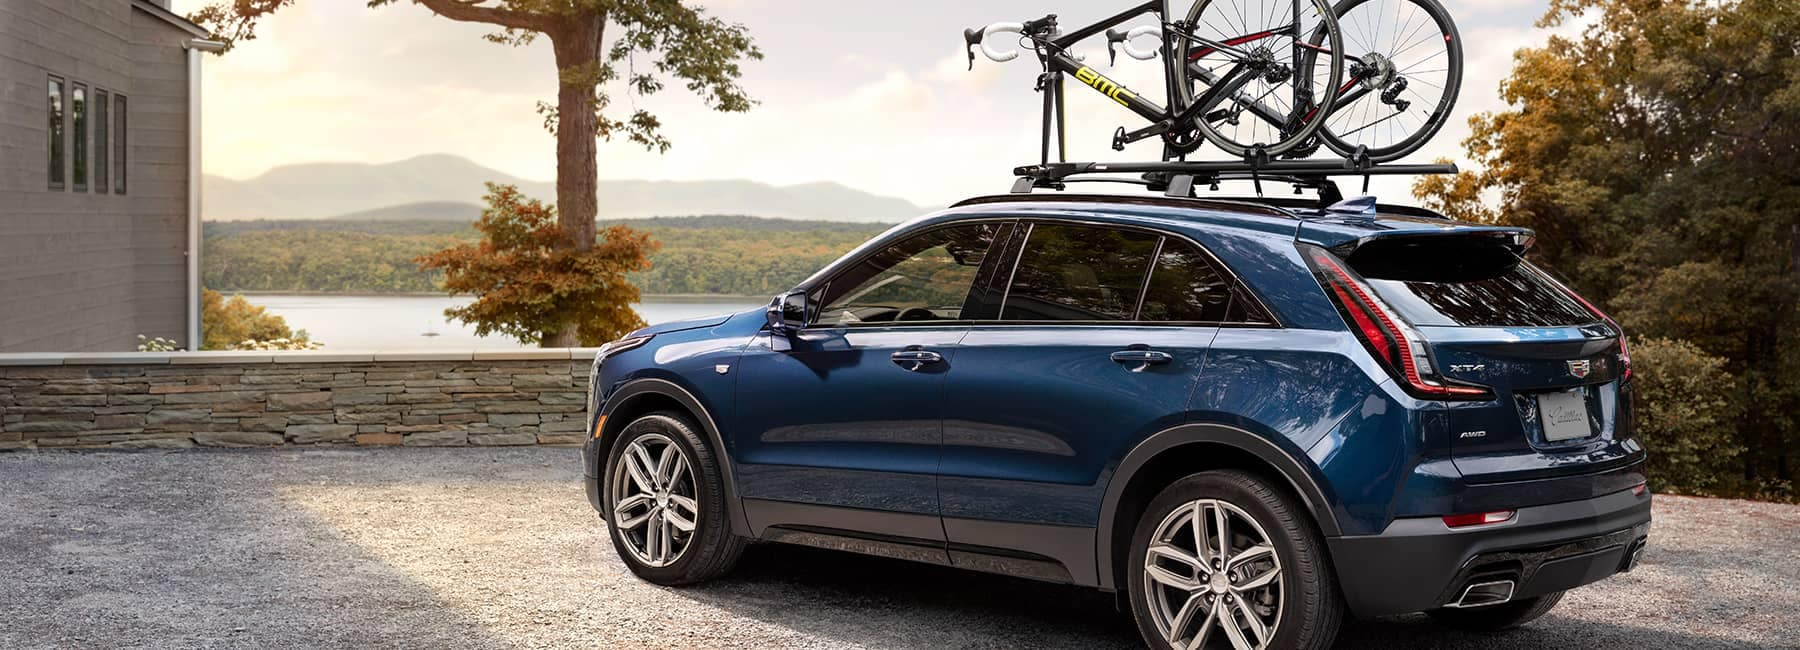 blue suv with bikes on top